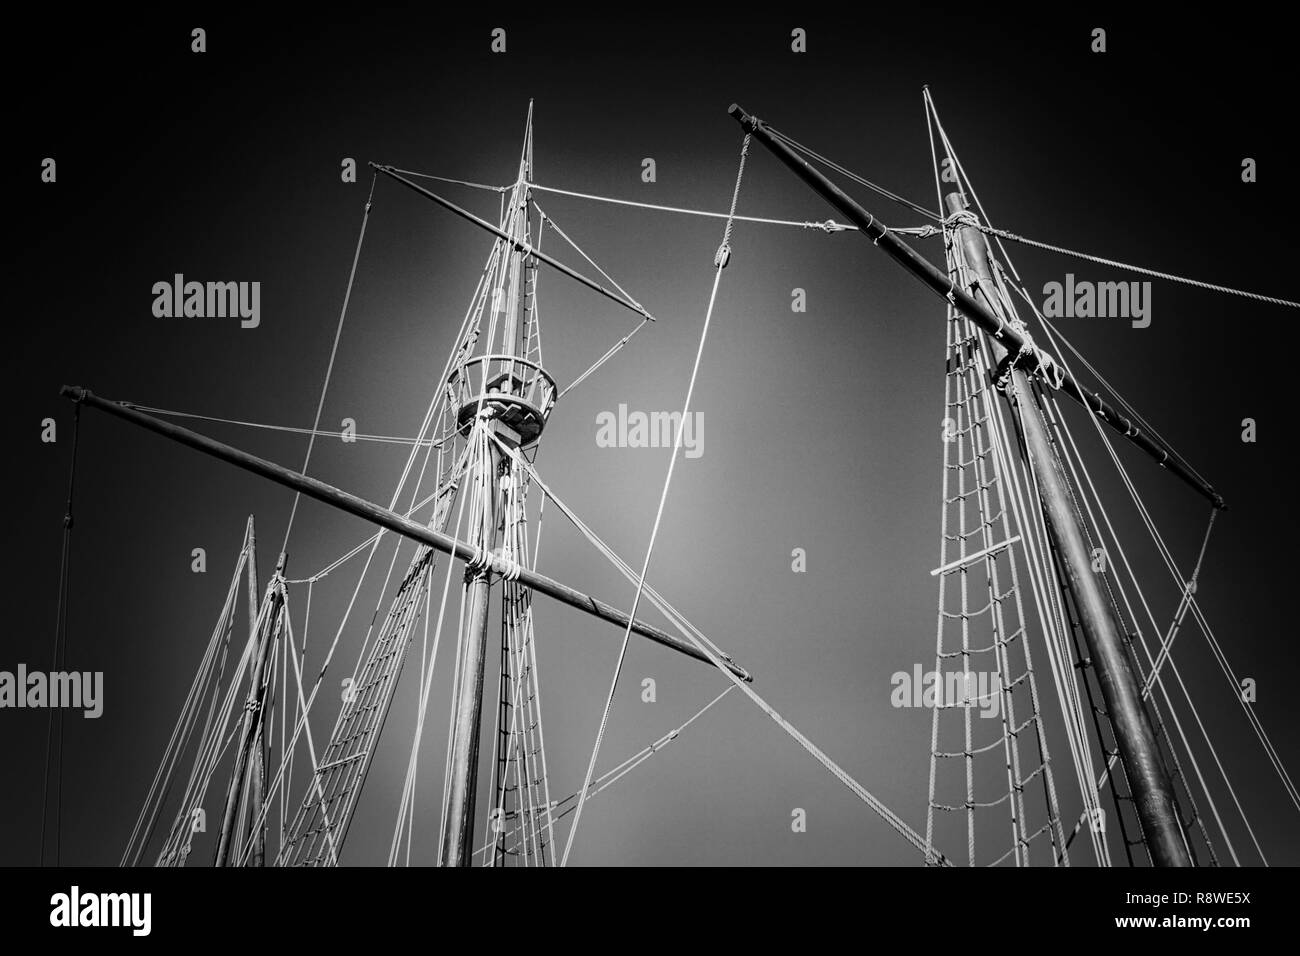 Masts and rigging of a portuguese caravel from the time of discovery. Used infrared filter. - Stock Image